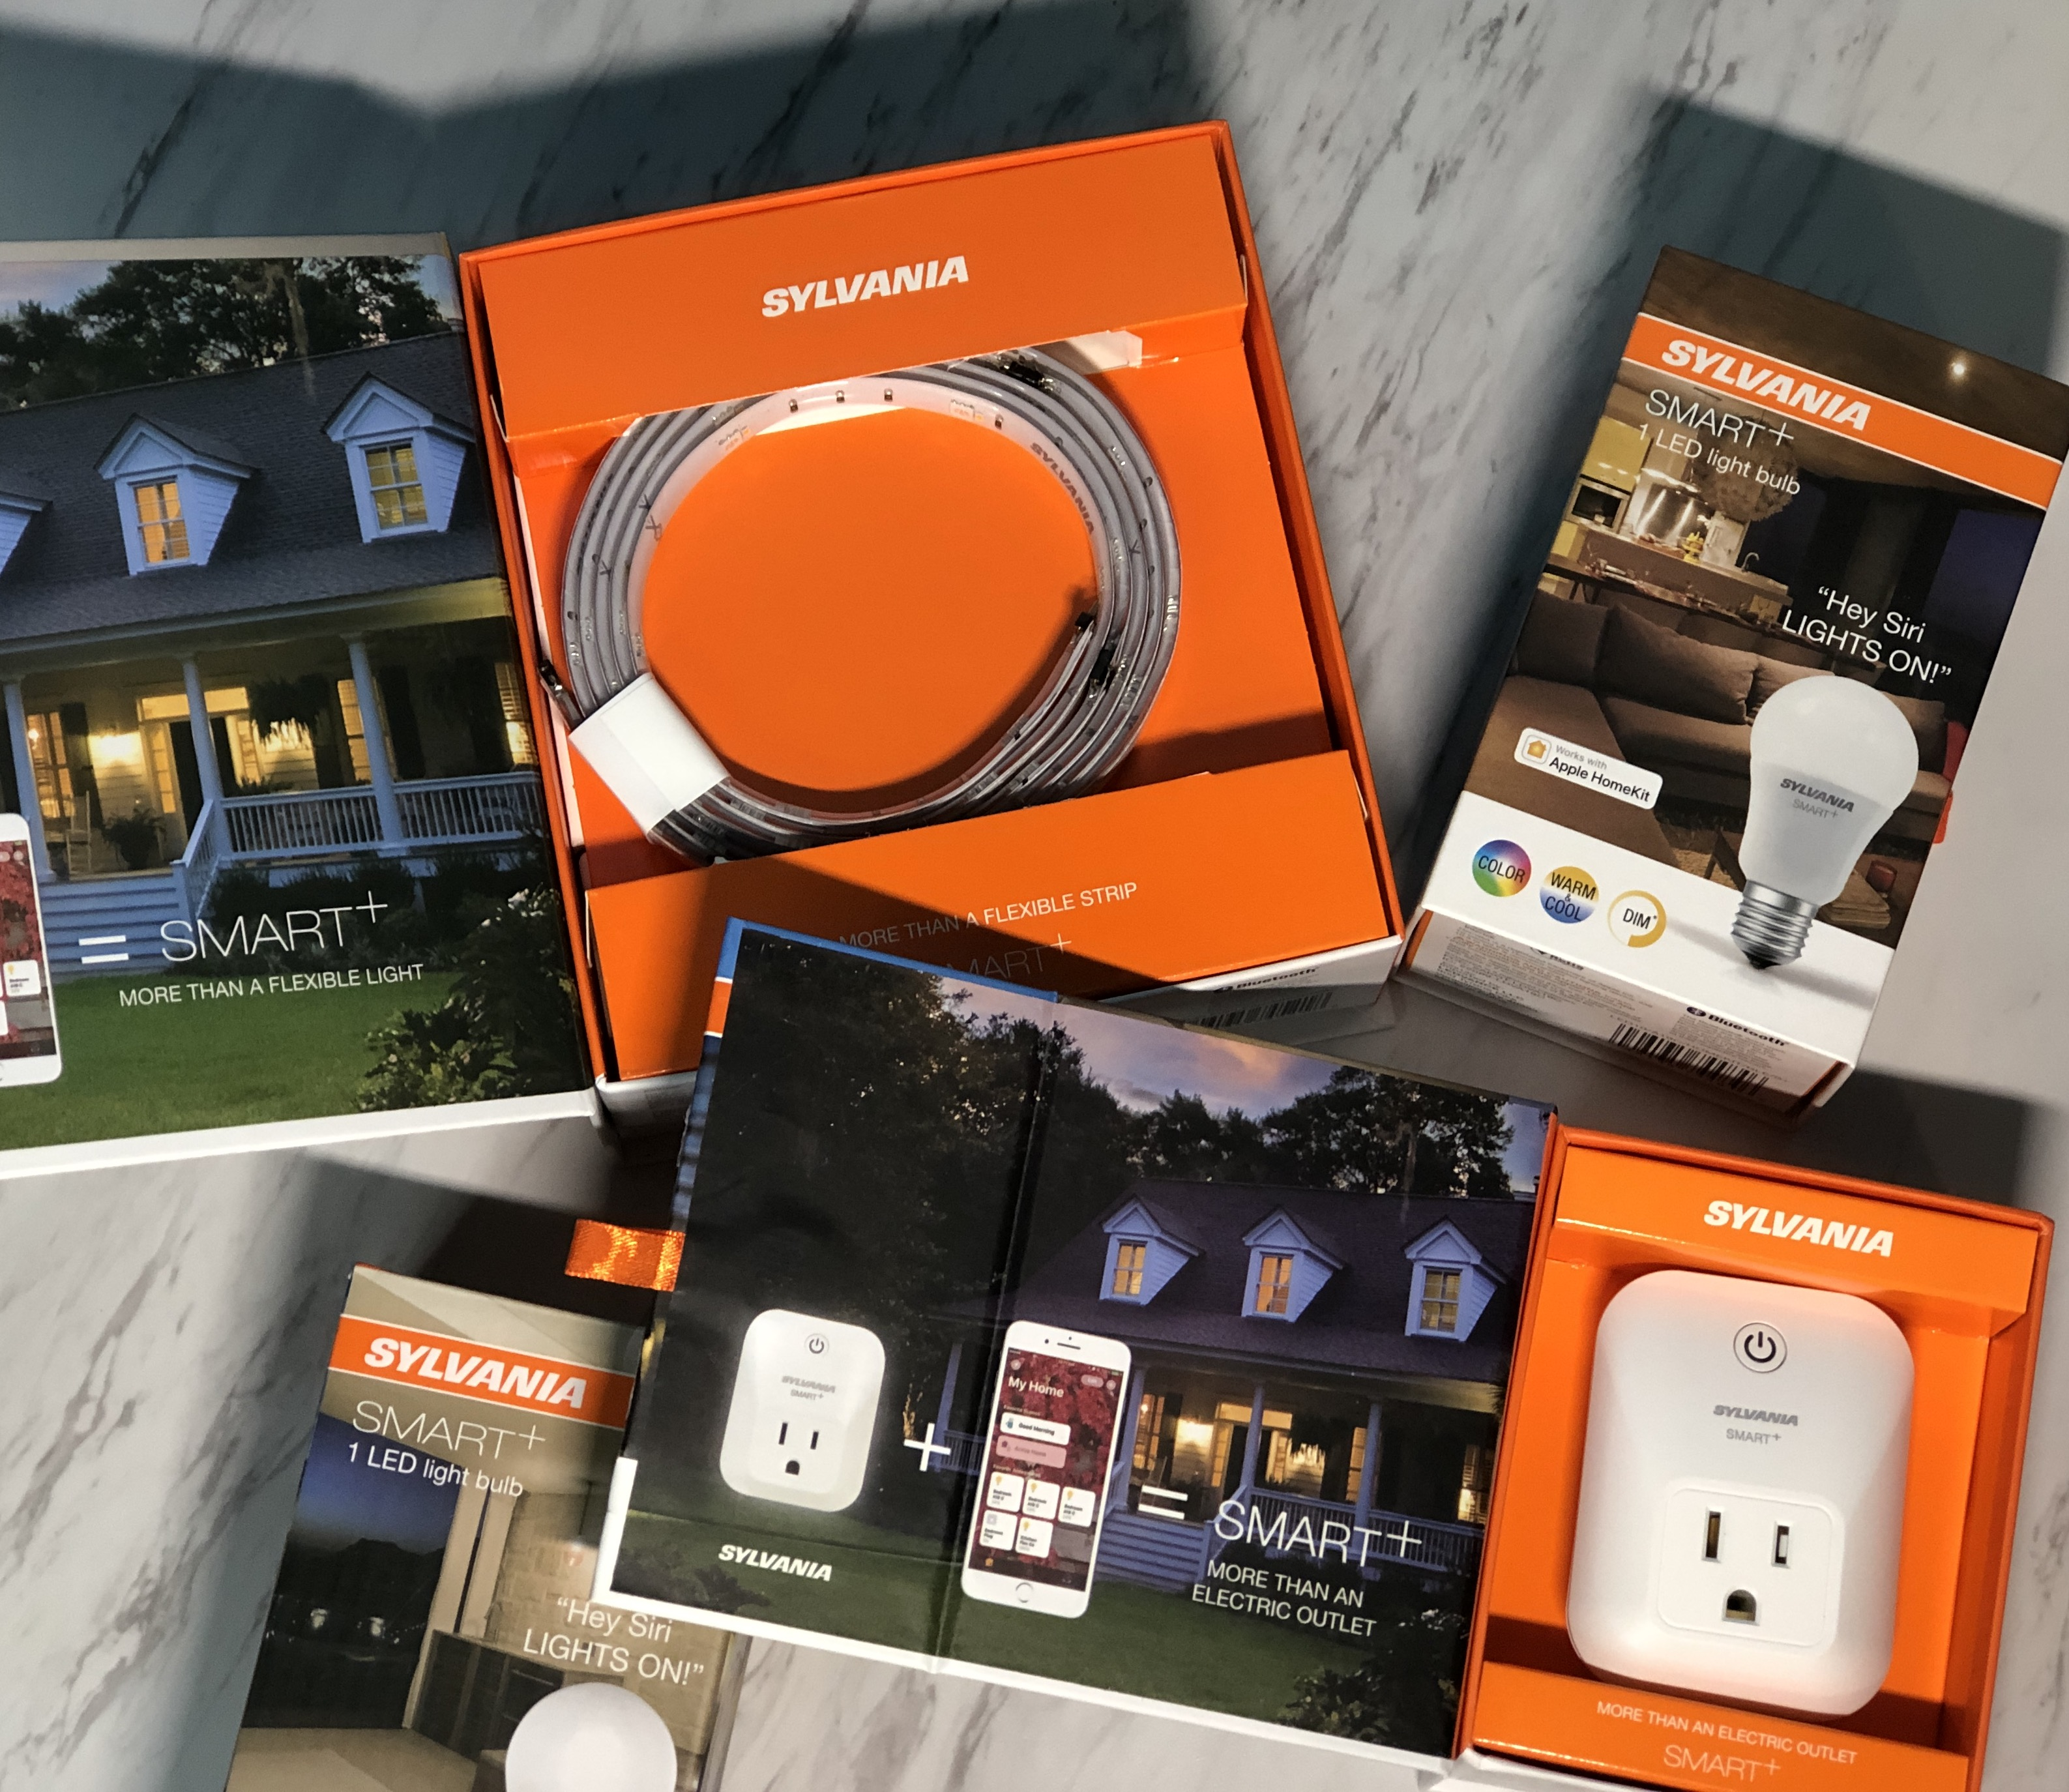 Sylvania smart lights and outlet